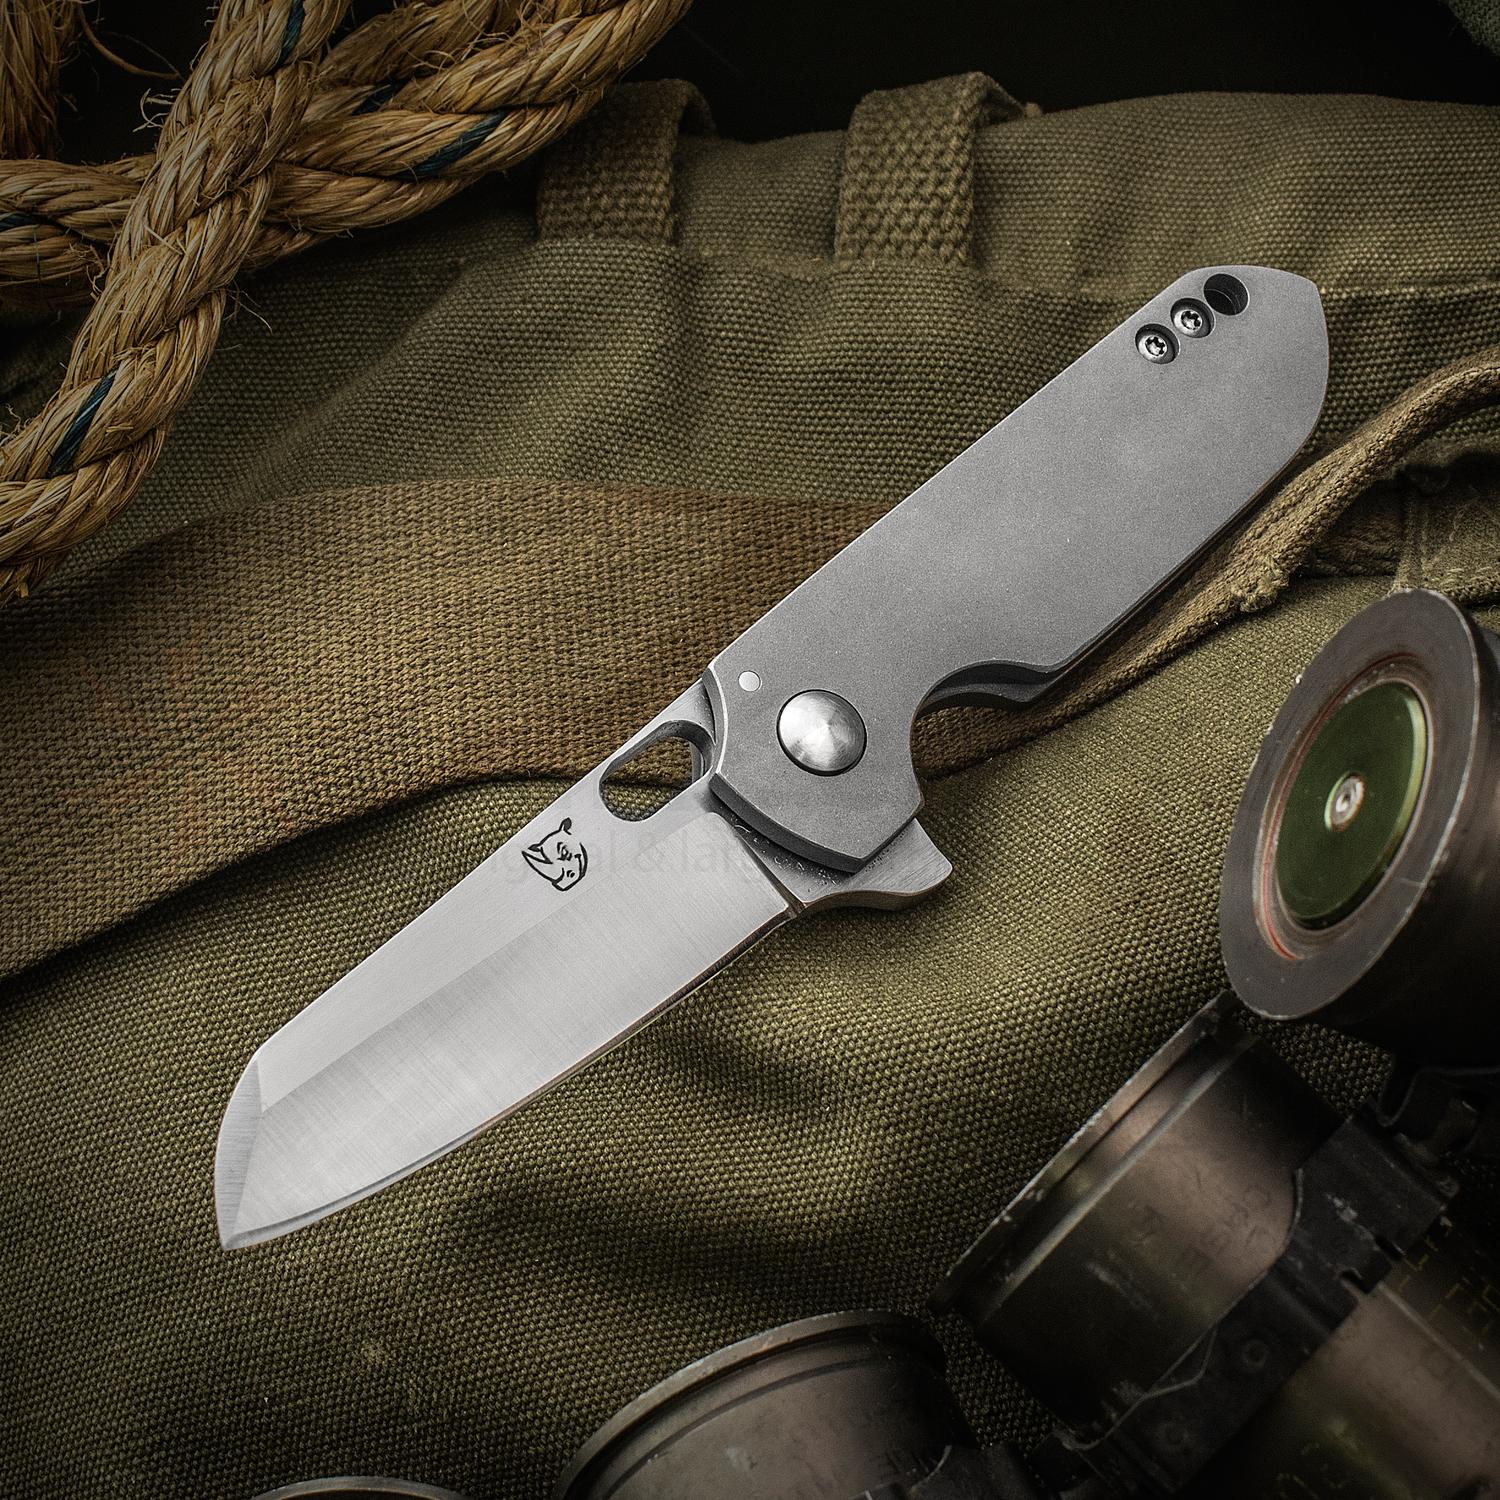 KM Designs Custom Drei Konig Flipper 3 inch CPM-154 Satin Blade, Blasted Titanium Handles, Mokuti Clip and Spacer